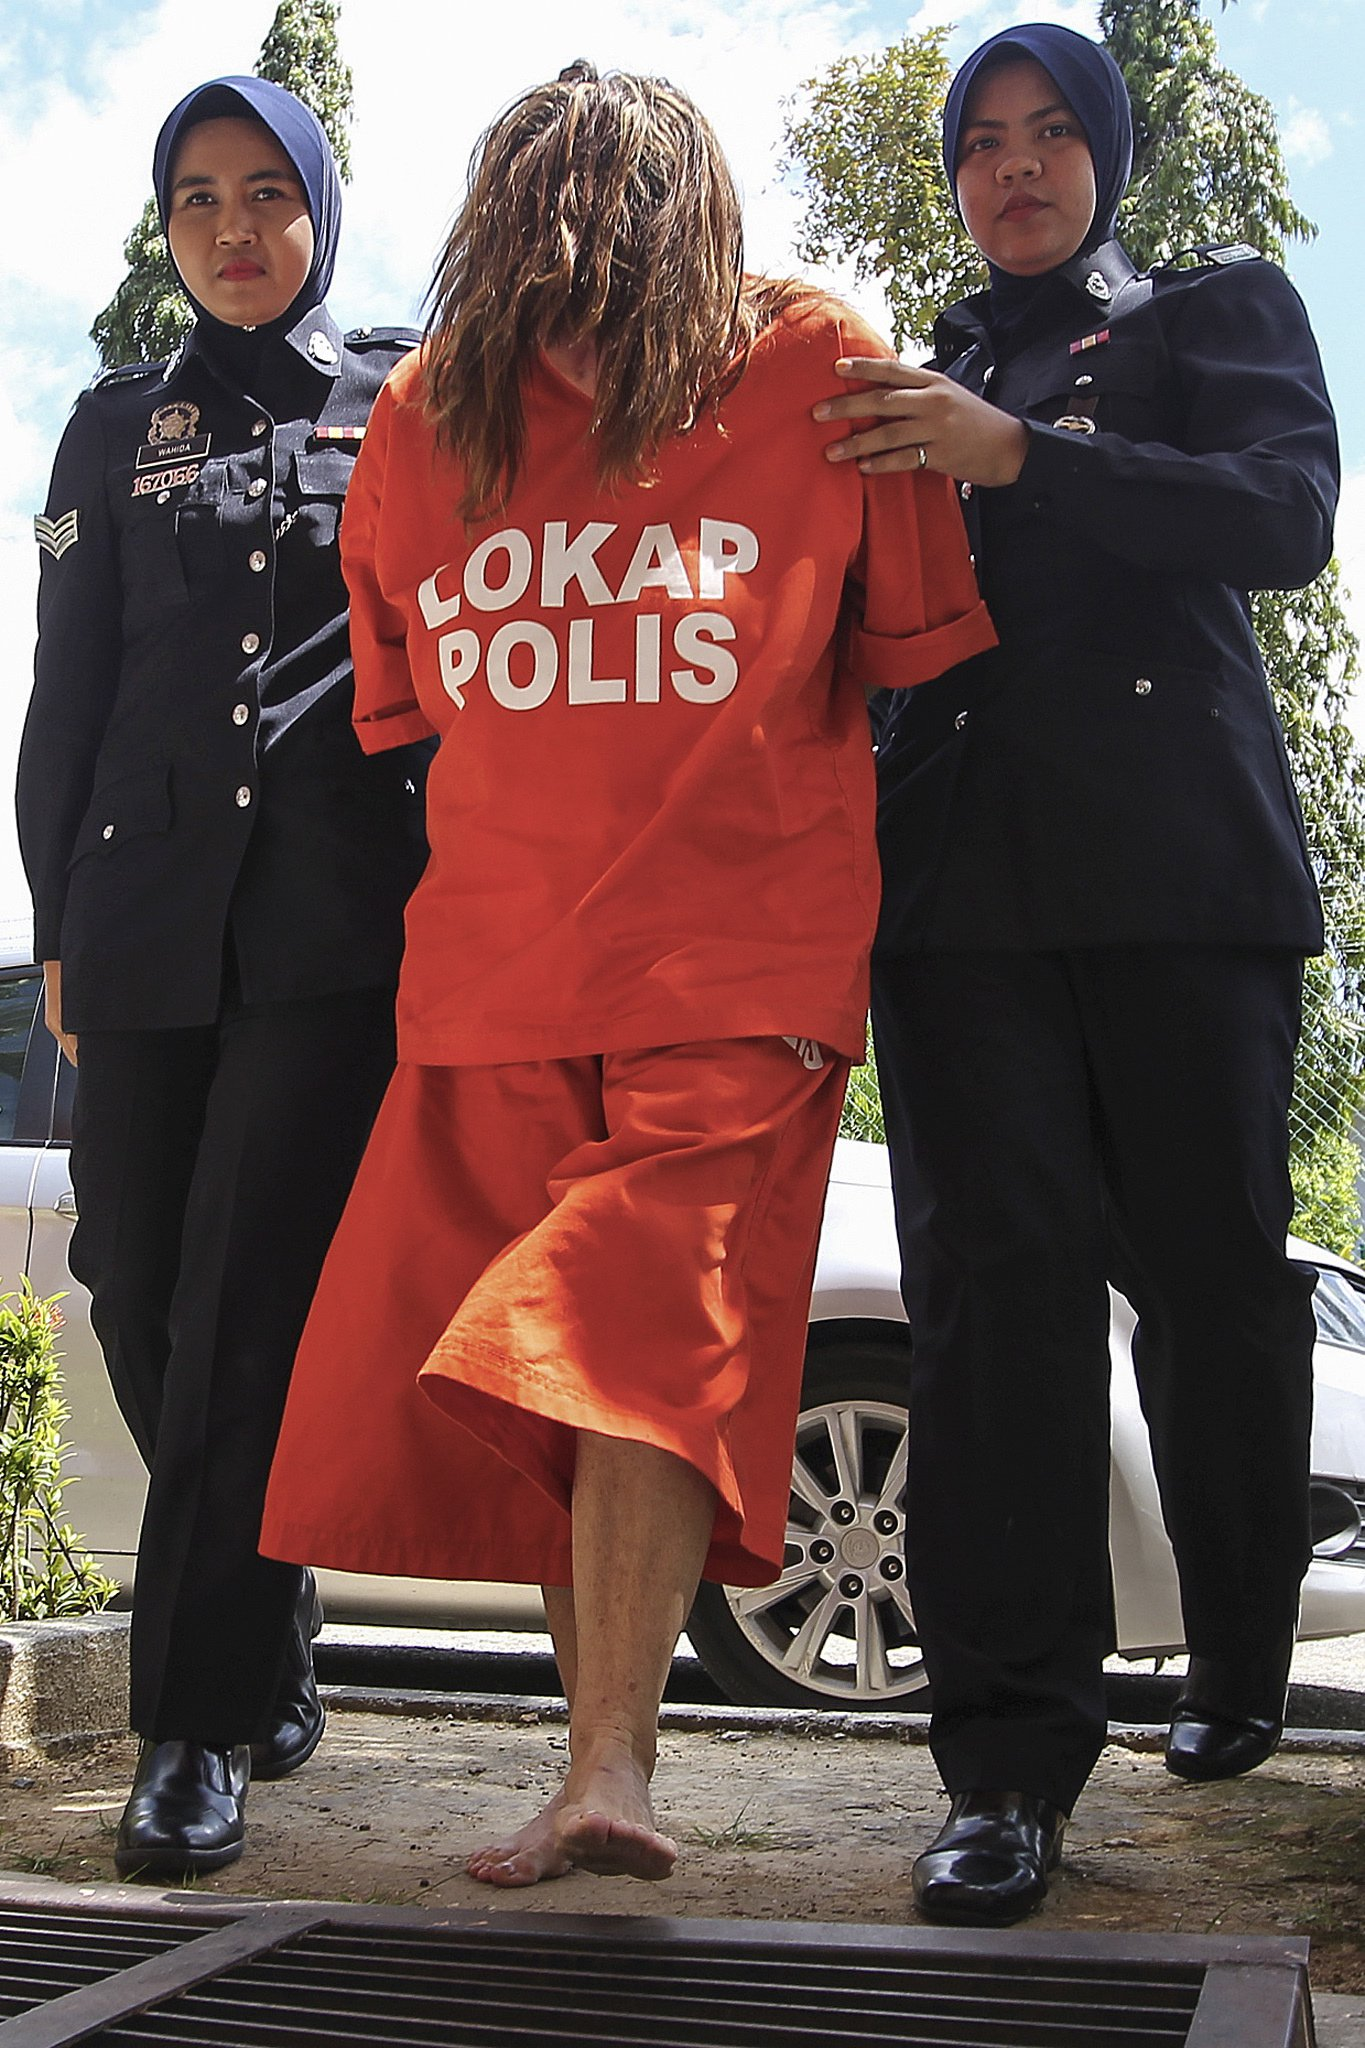 epa07130440 Samantha Williams (C), 61, is escorted by a Royal Malaysian Police officer as they arrive at Langkawi court, state of Kedah, Malaysia, 30 October 2018. Samantha Williams has been arrested on 18 October for the alleged murder of her husband John William Jones, 62, who was found on the floor of their house with a stab wound to the chest with a kitchen knife in Malaysia. EPA/STR